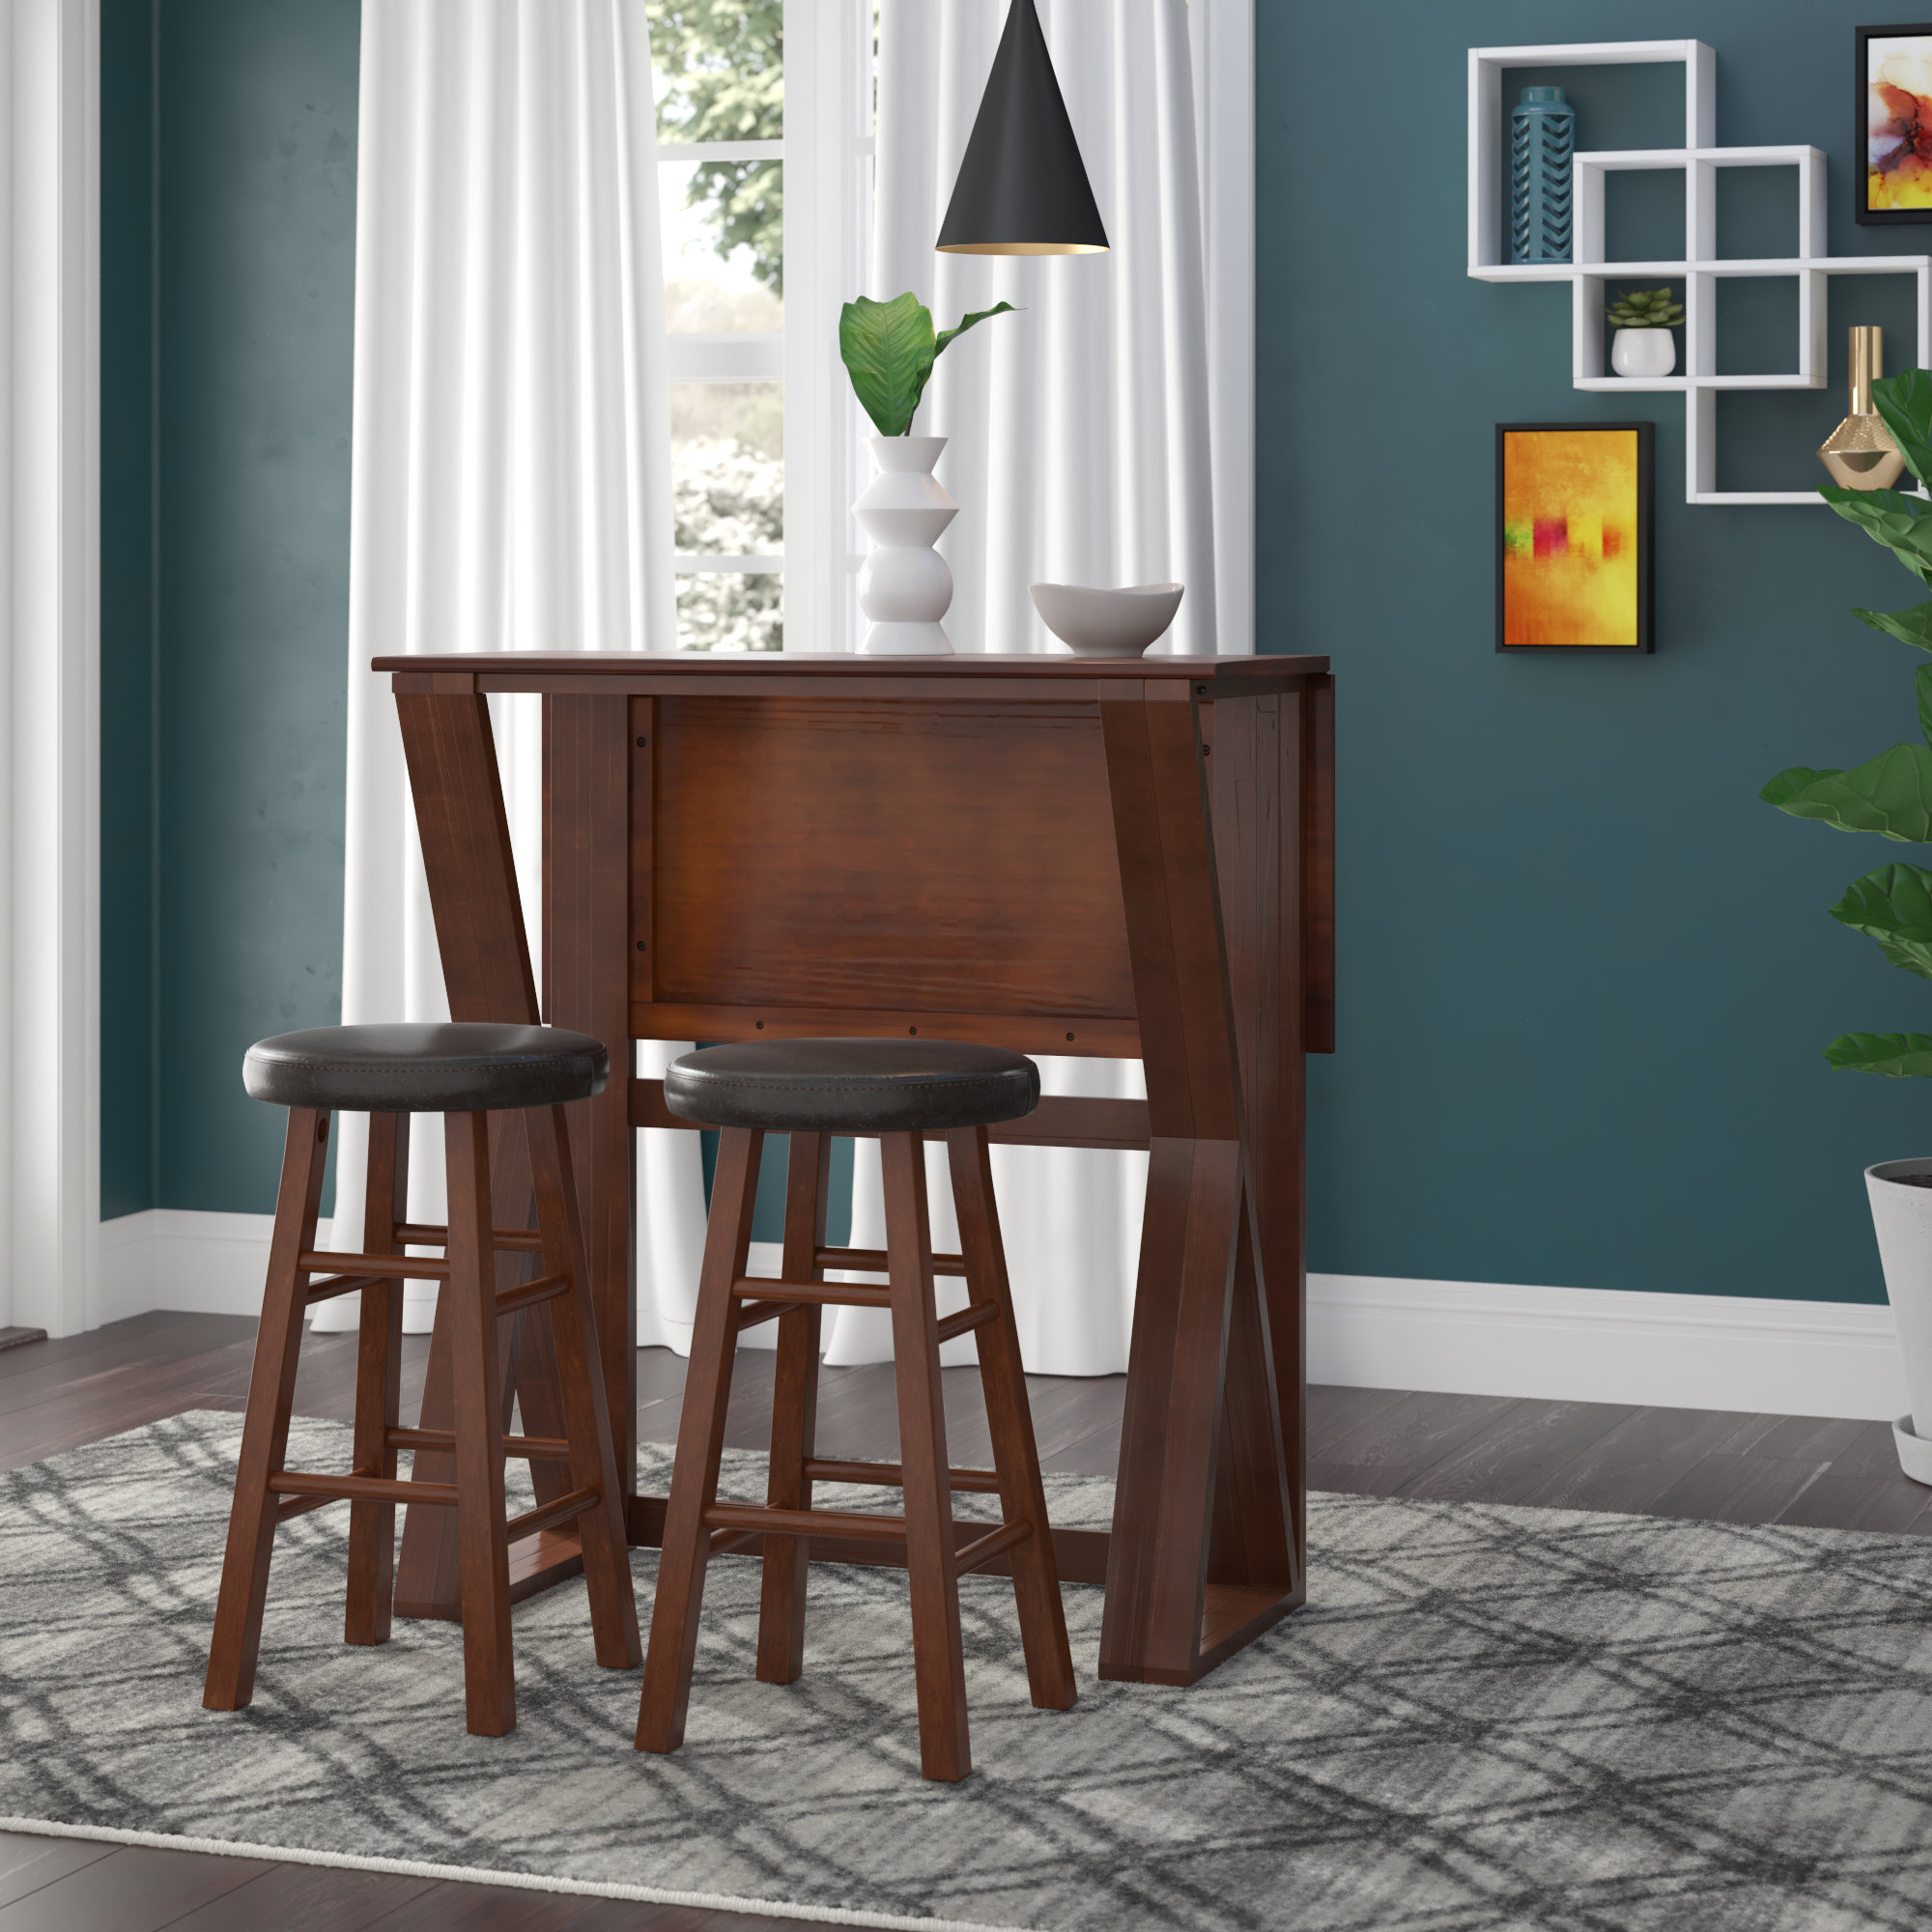 Brayan 3 Piece Drop Leaf Solid Wood Dining Set Intended For Most Popular Bettencourt 3 Piece Counter Height Solid Wood Dining Sets (View 7 of 20)